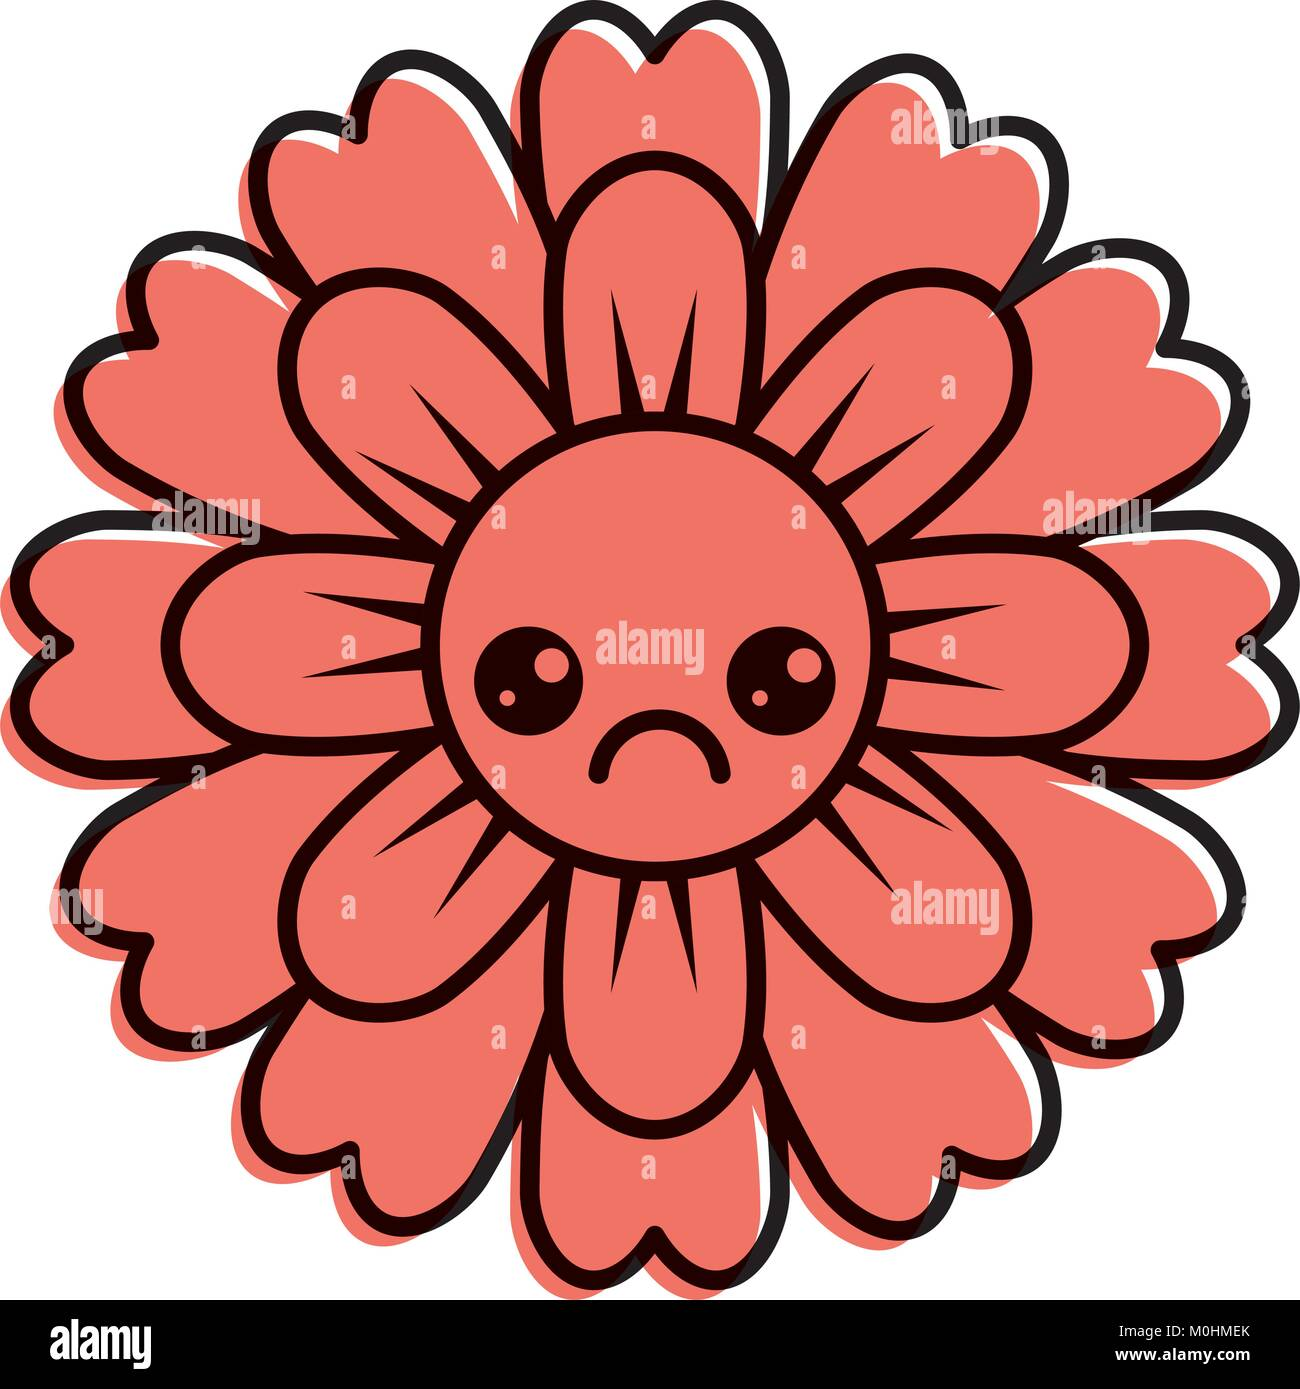 flower kawaii cartoon cute petals Stock Vector Art & Illustration ...